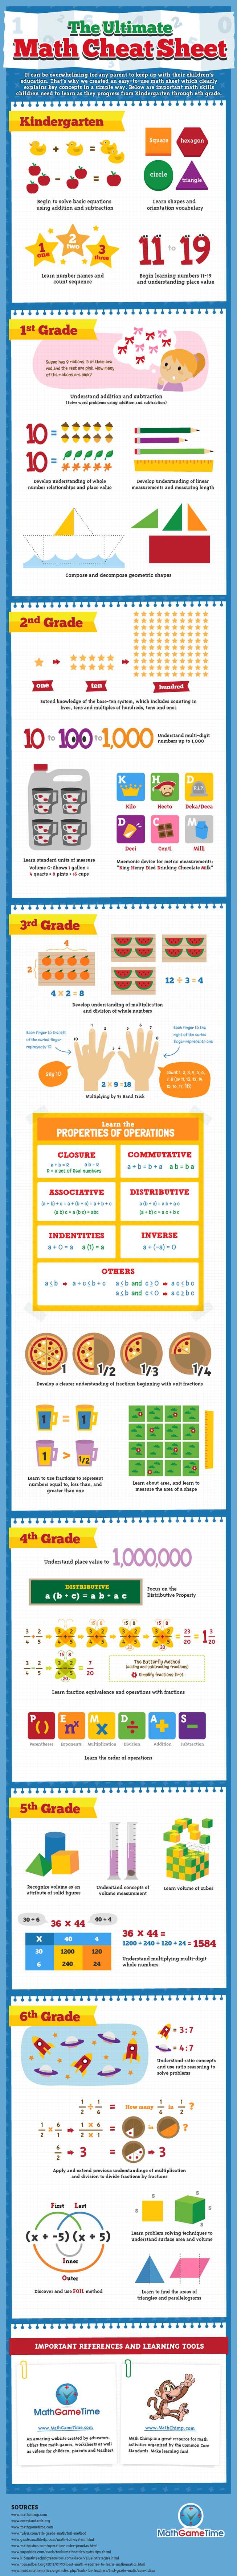 math-cheat-sheet-infographic